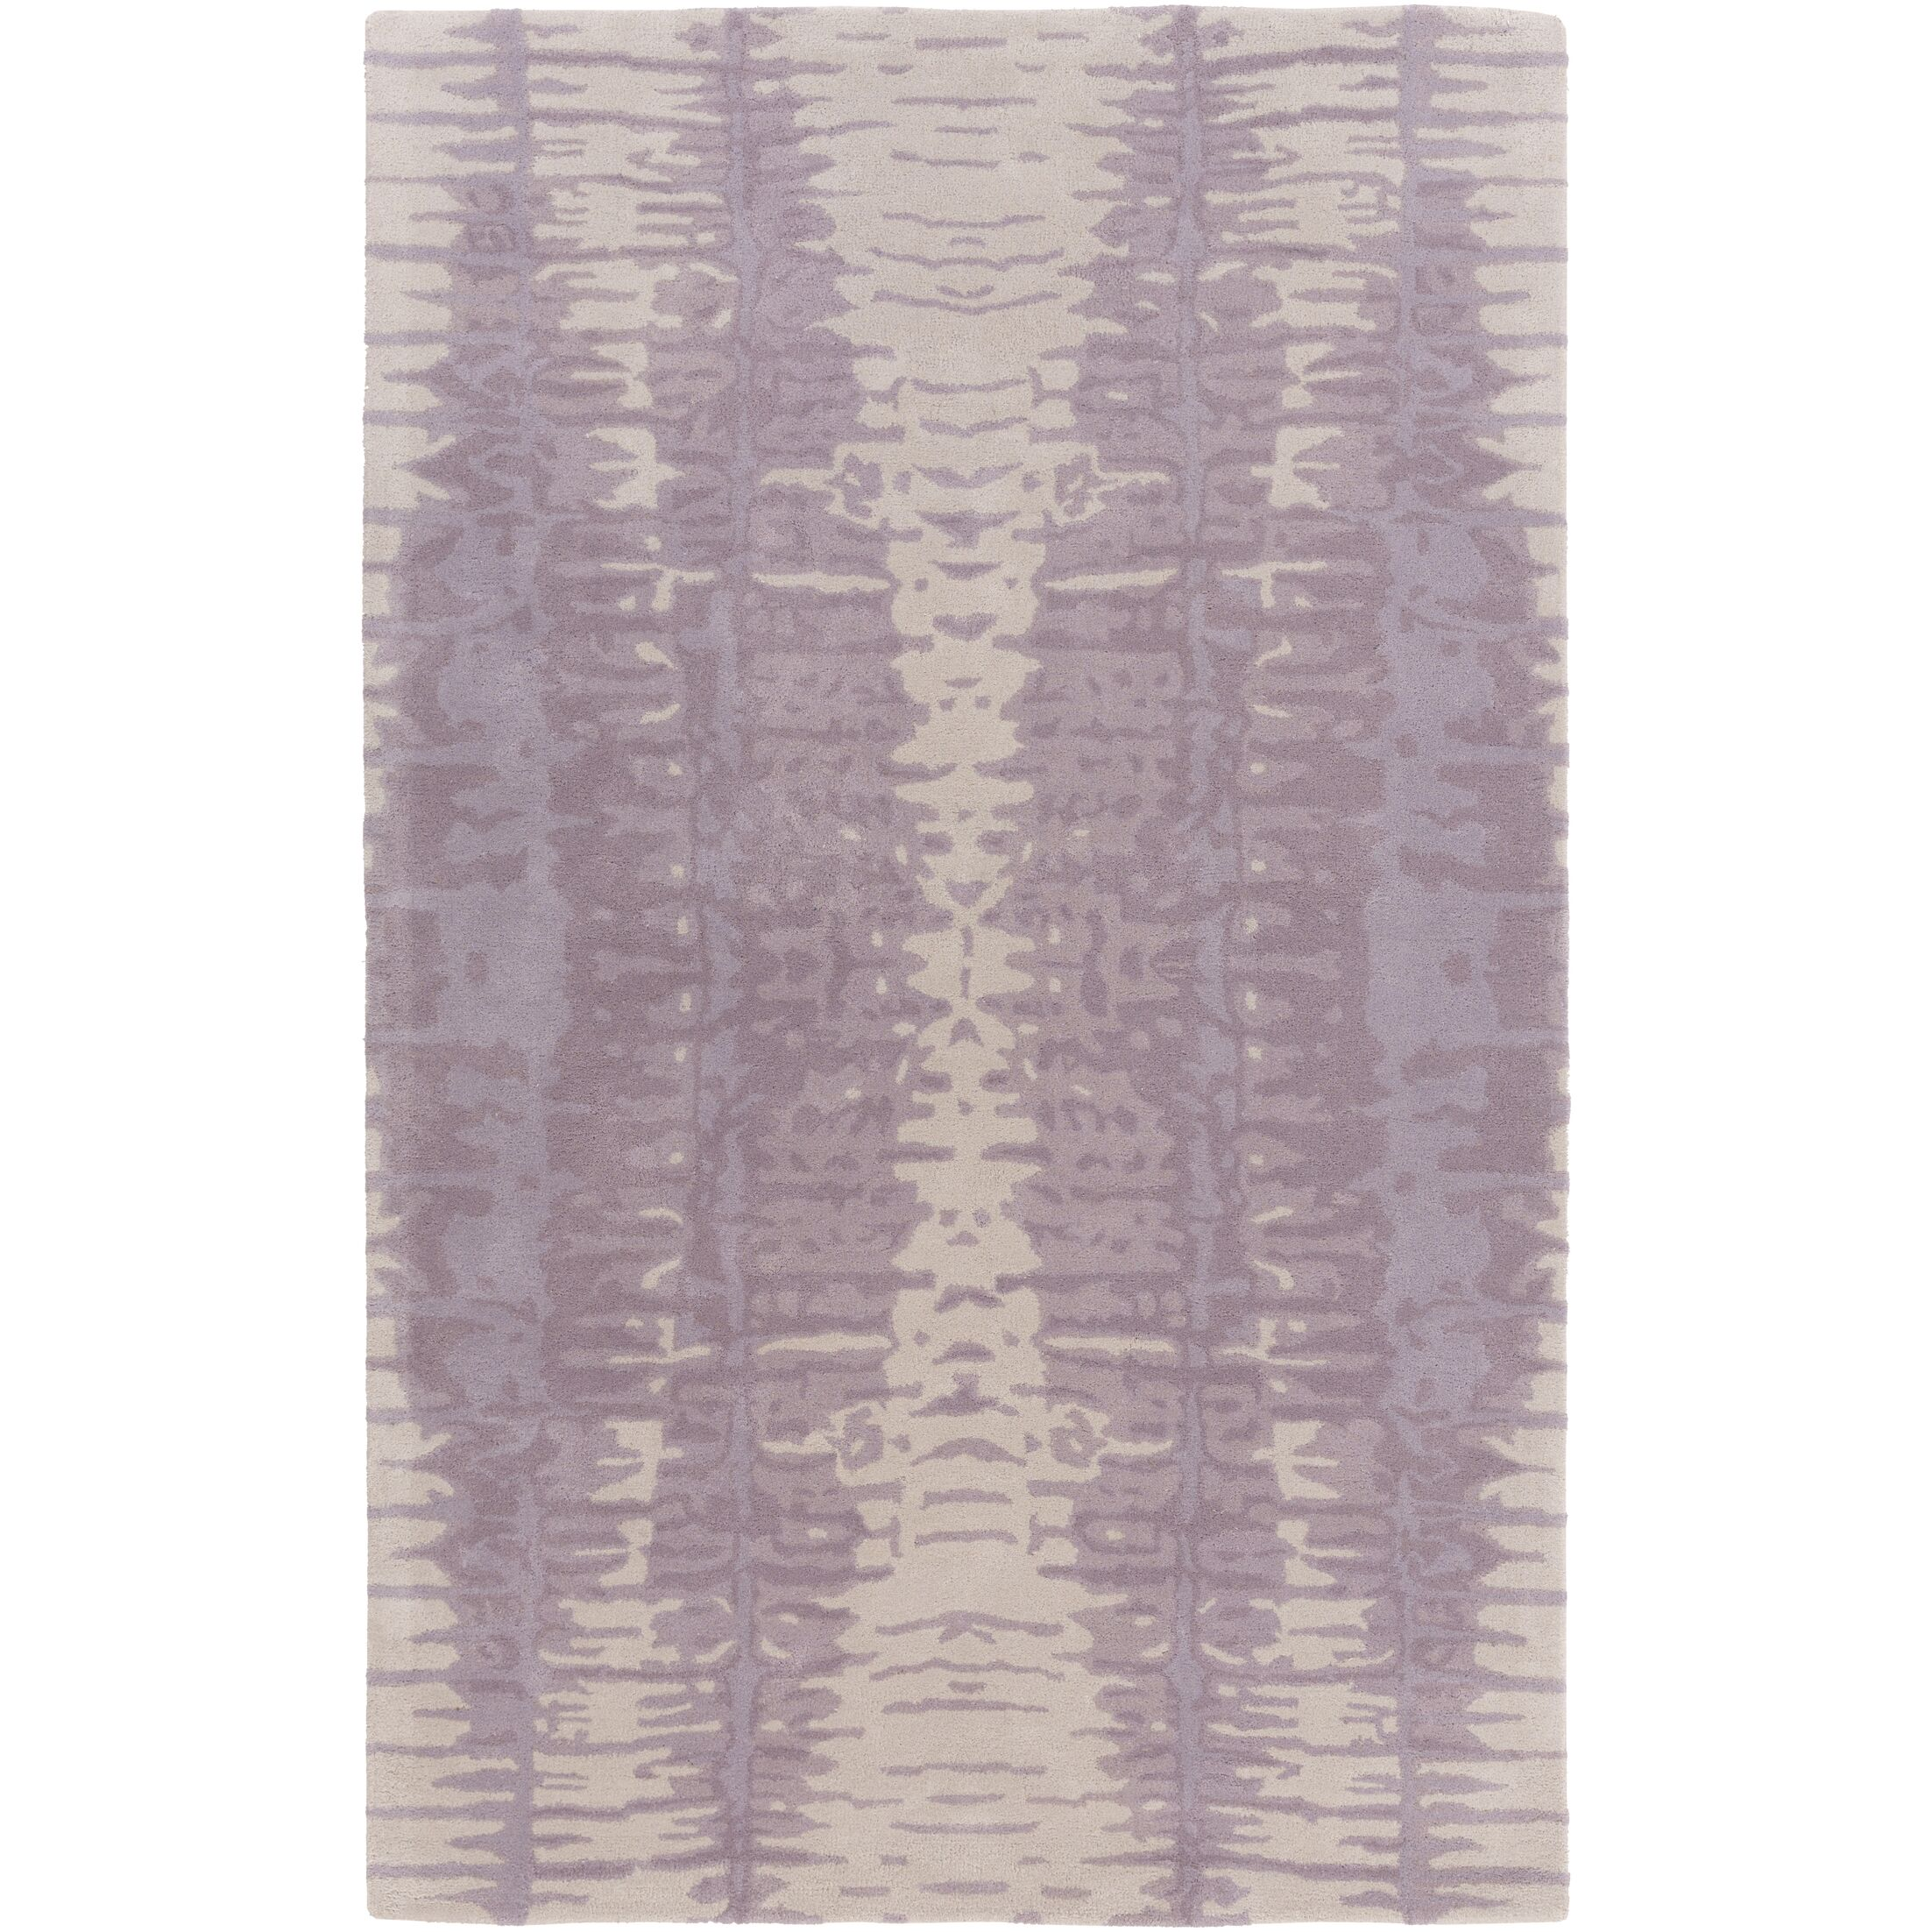 Romola Hand-Tufted Lavender/Light Gray Area Rug Rug Size: Rectangle 8' x 11'